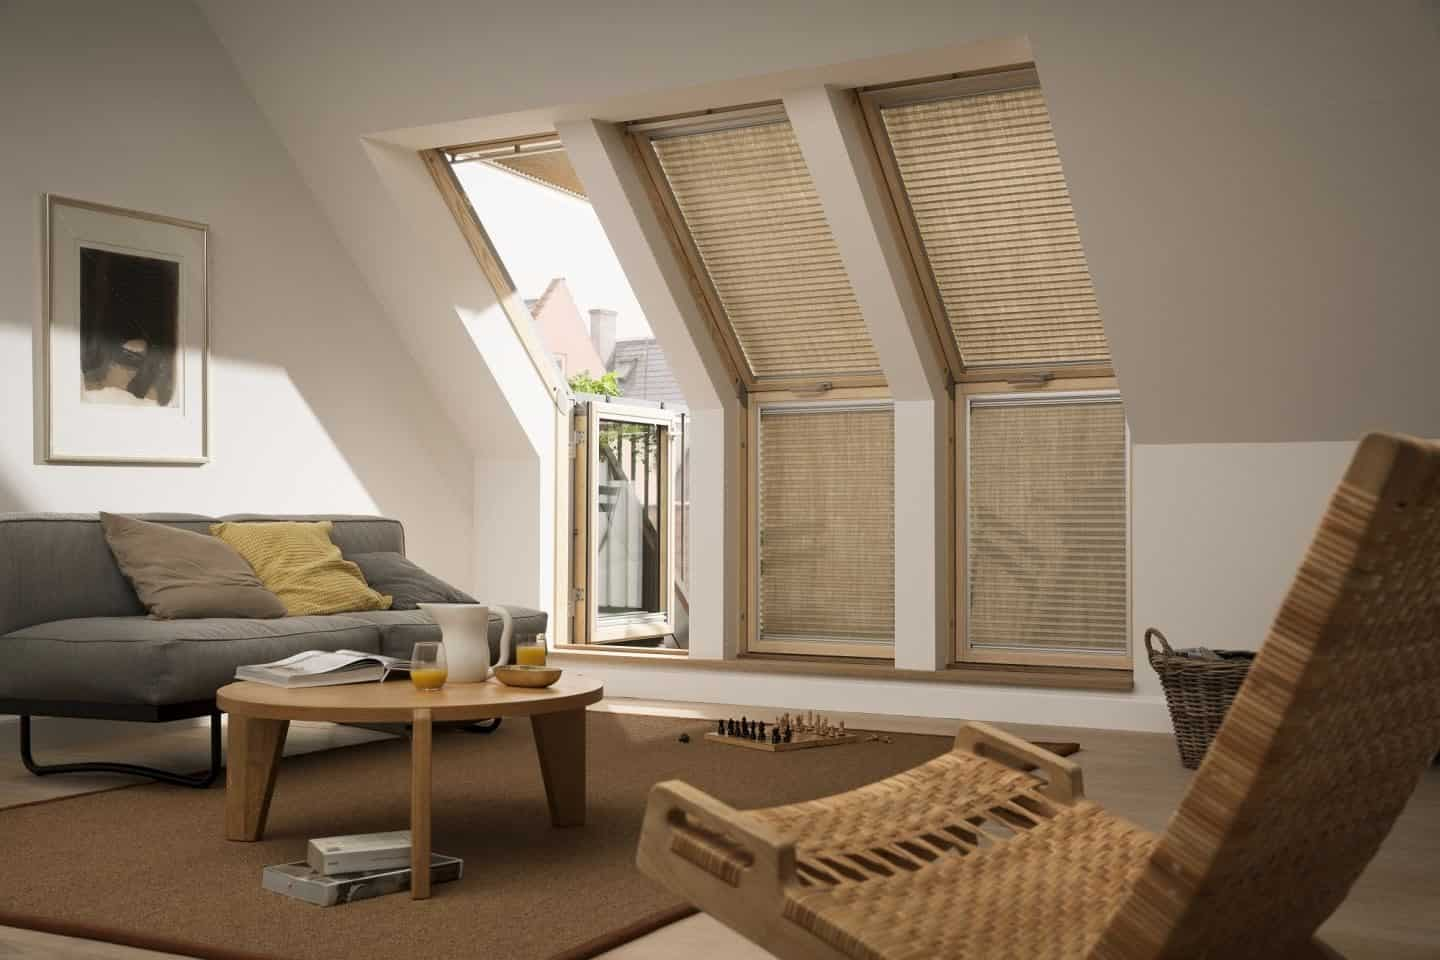 Loft Conversion - living Room - Velux Terrace windows with Blinds